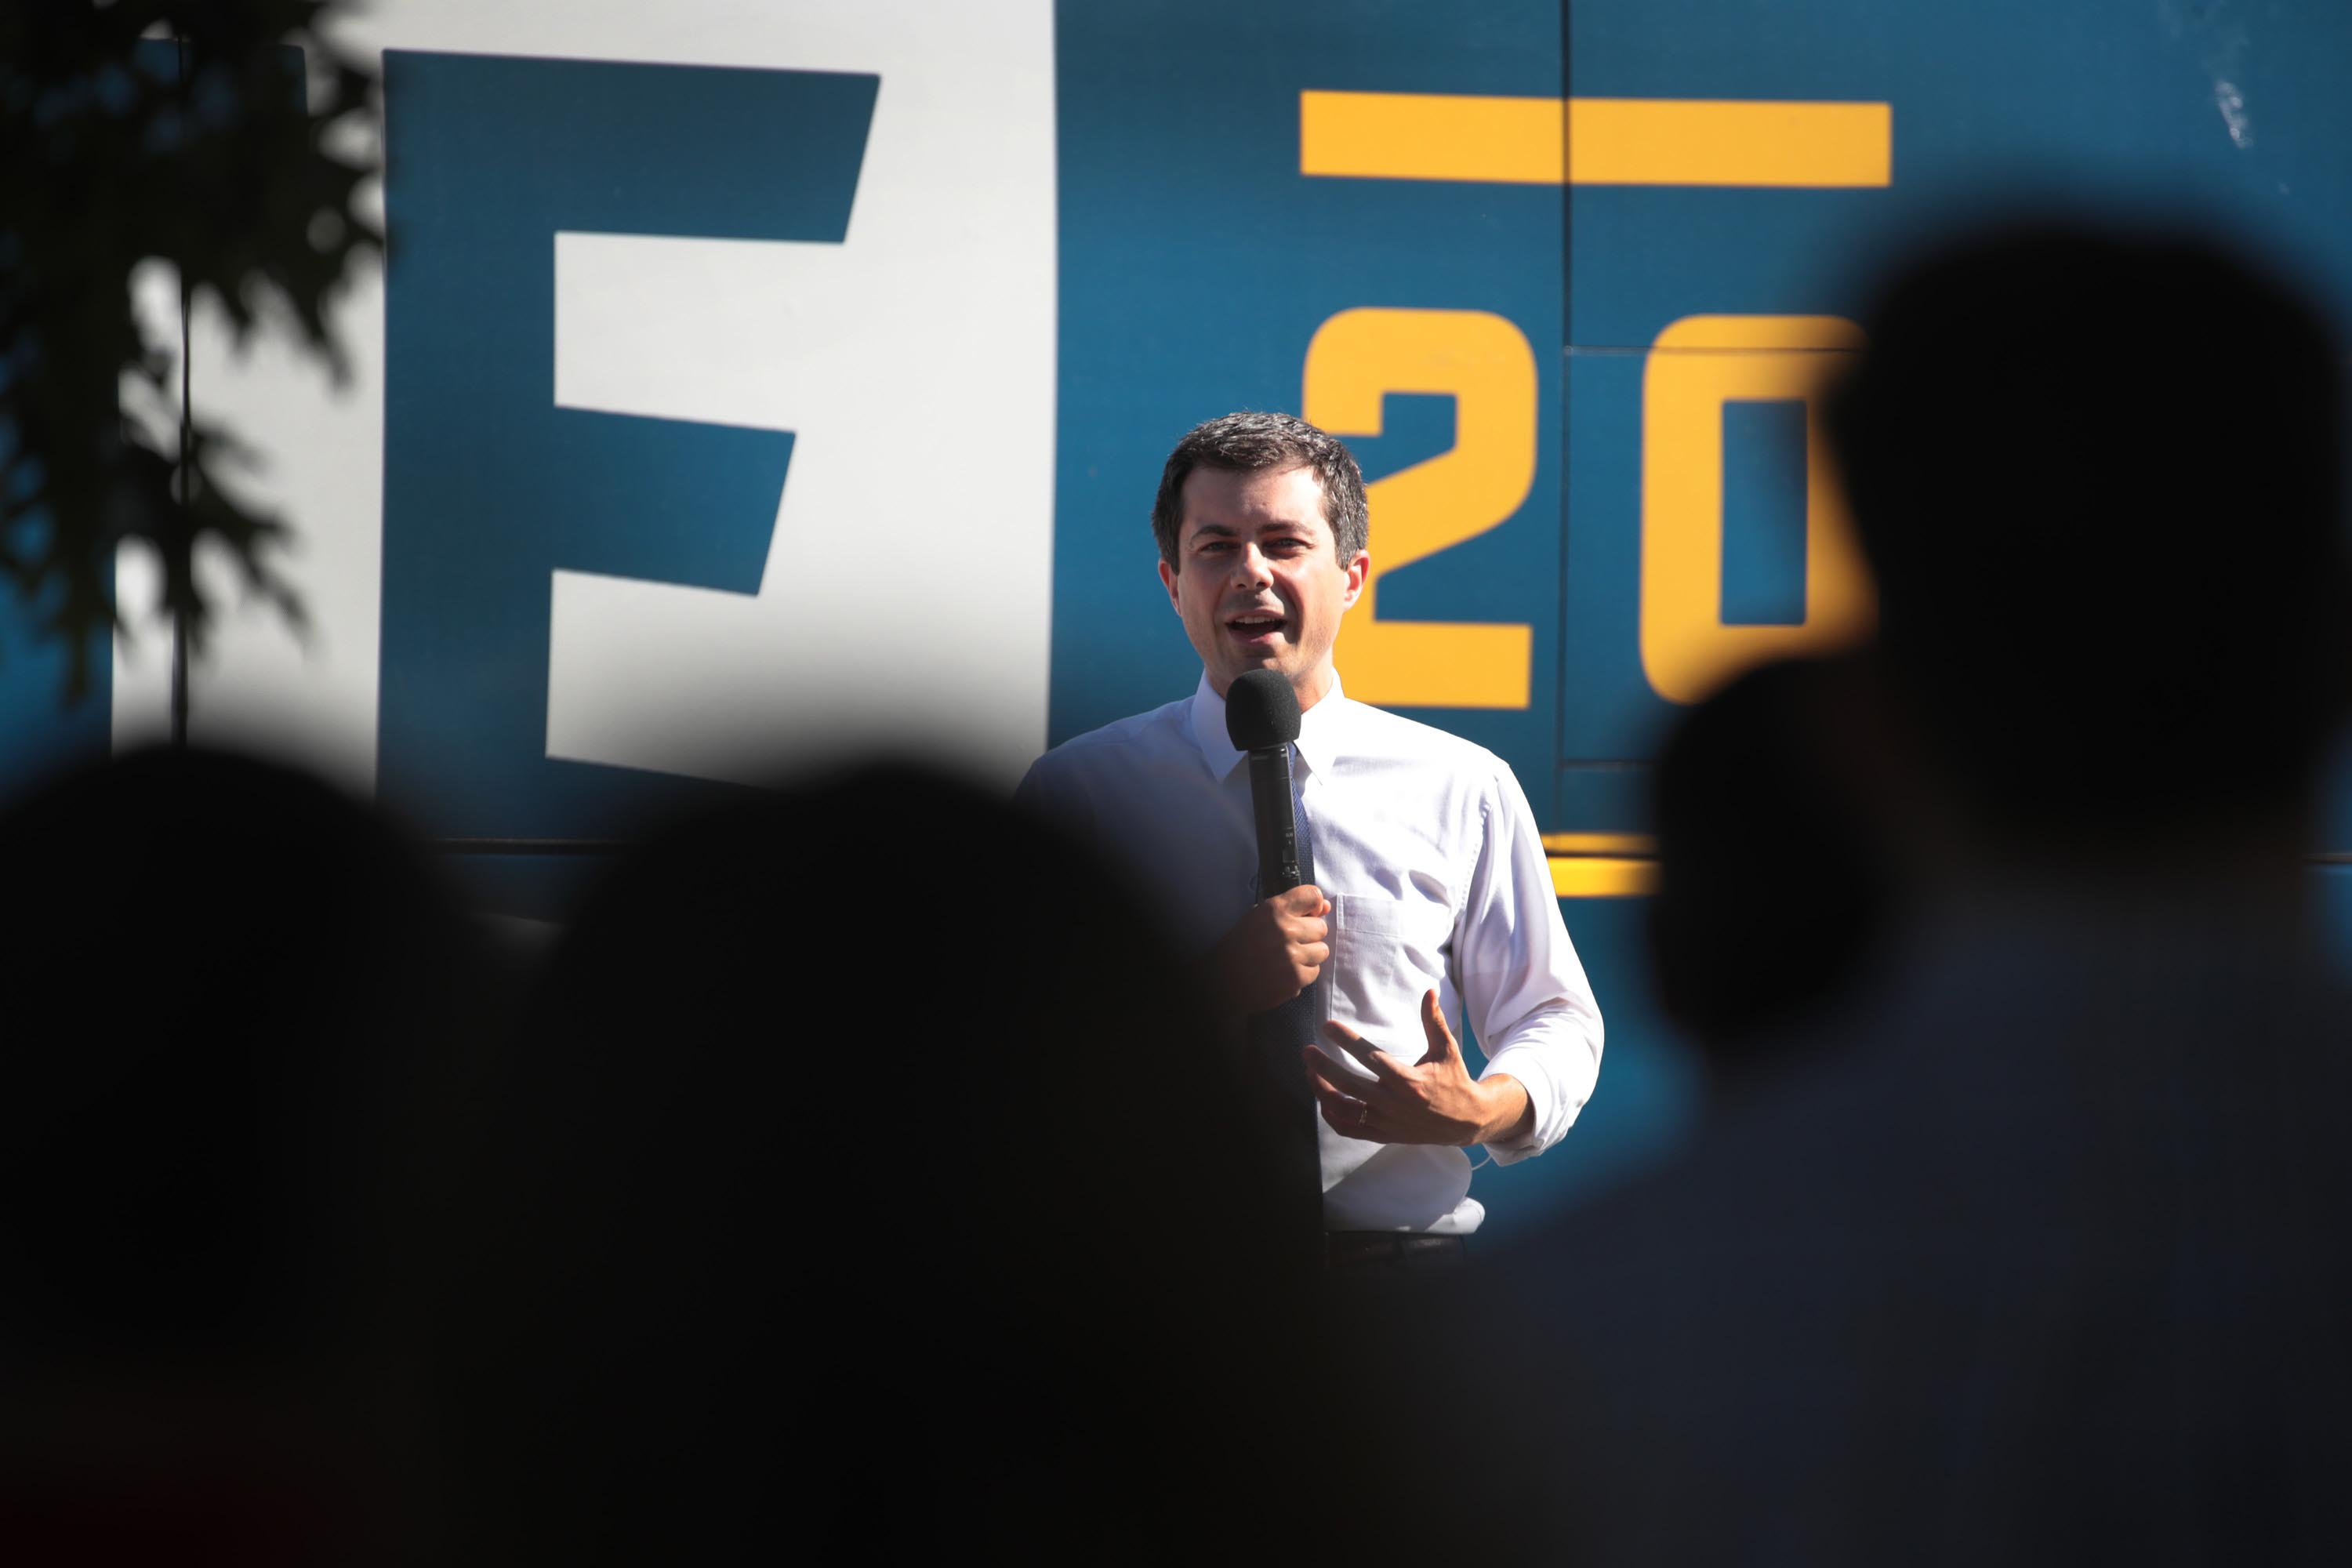 Buttigieg to open fundraisers to press and publish names of top fundraisers after calls for transparency